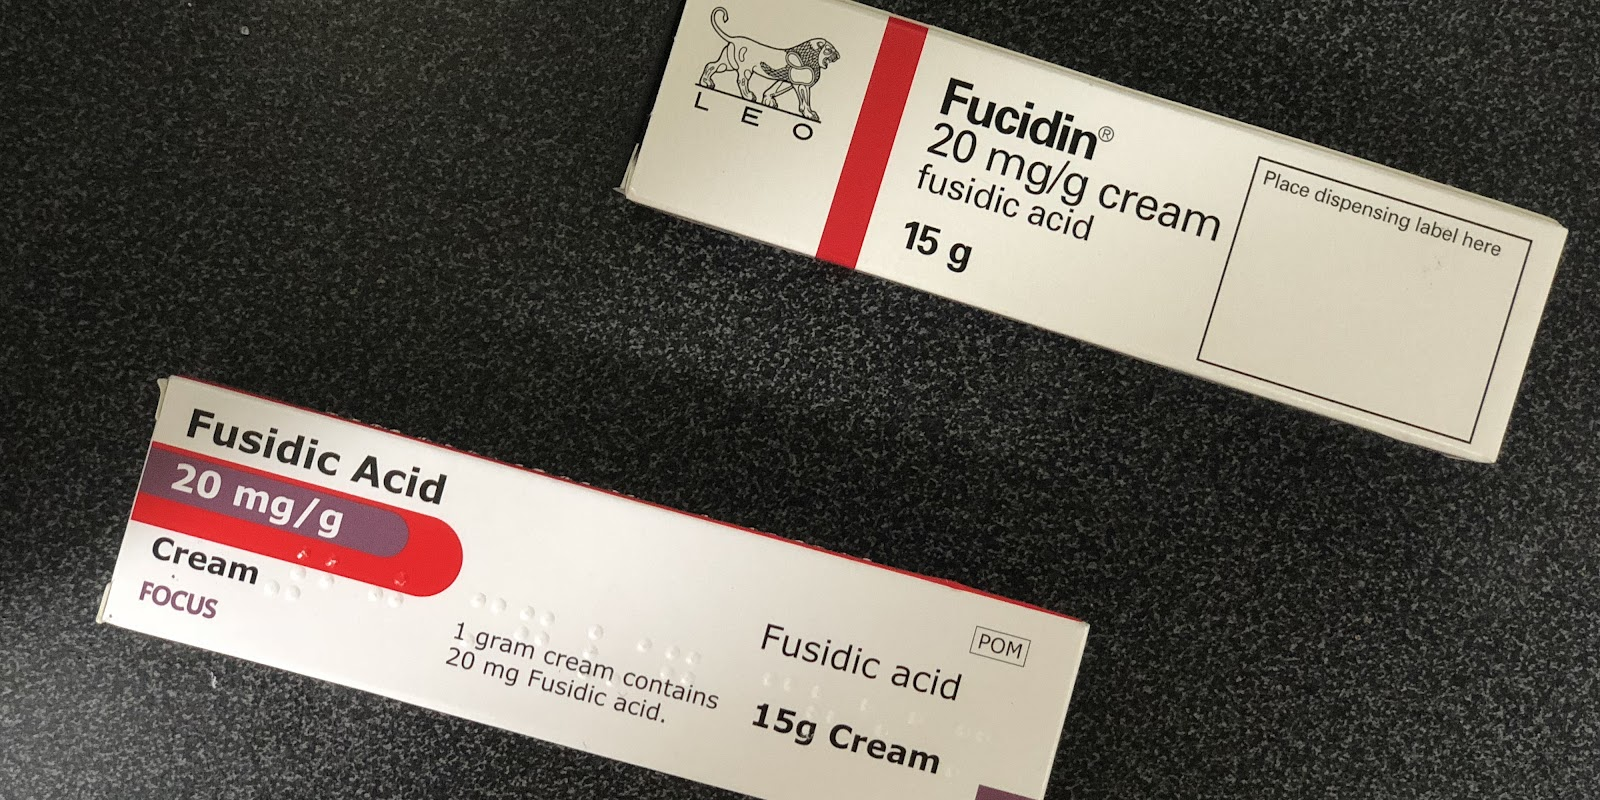 Fucidine (cream). Instructions